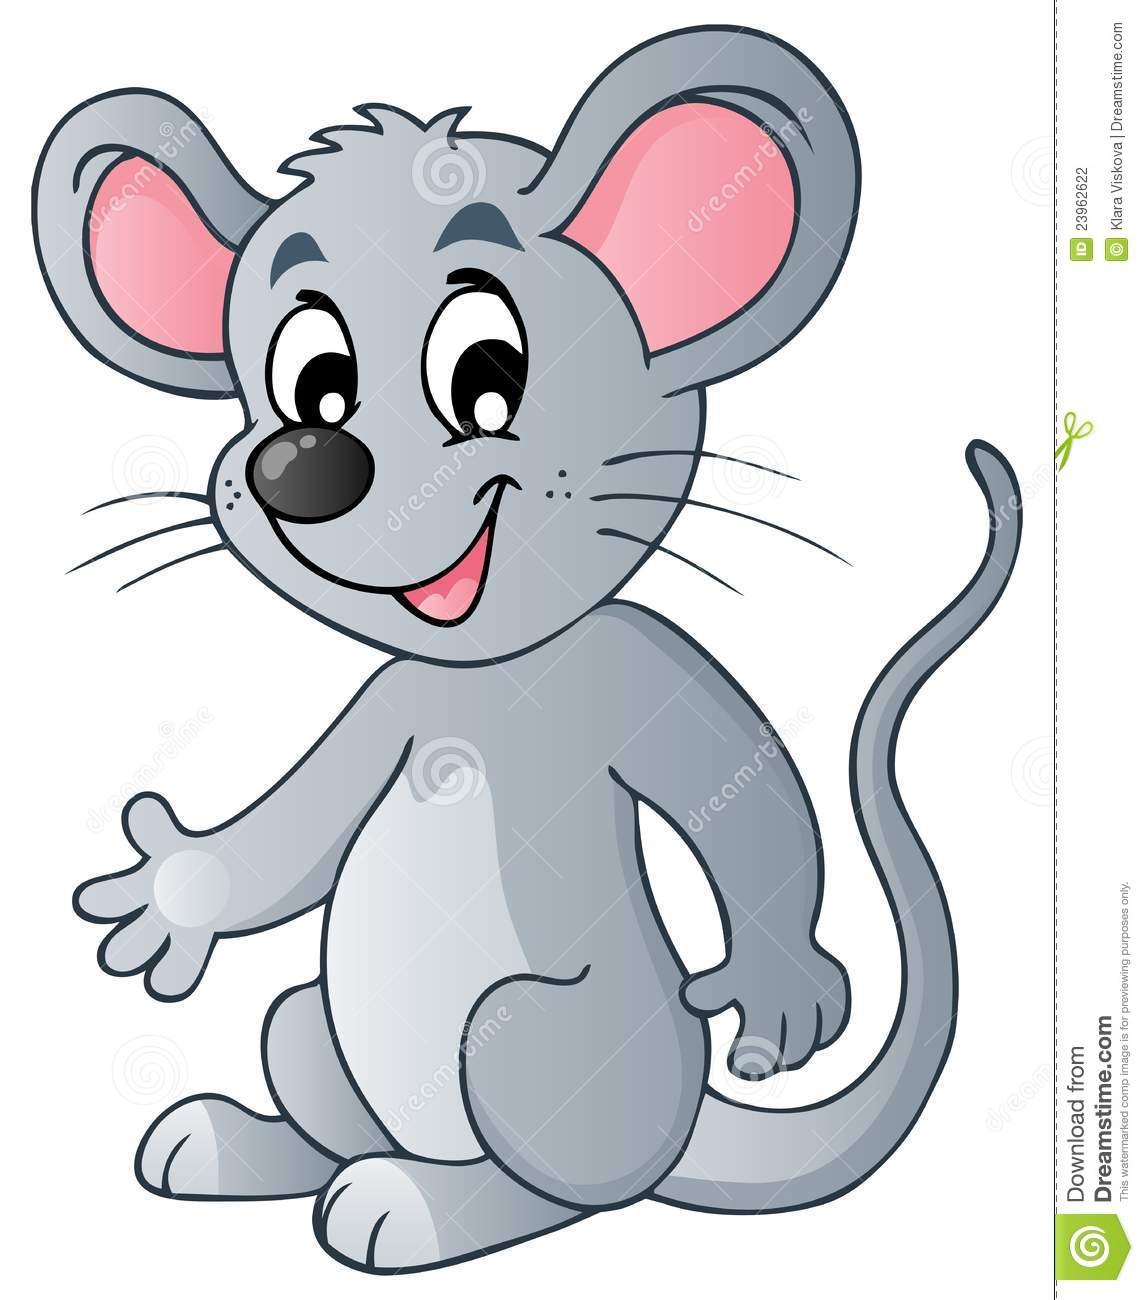 Cute cartoon mouse stock vector. Illustration of clipart.